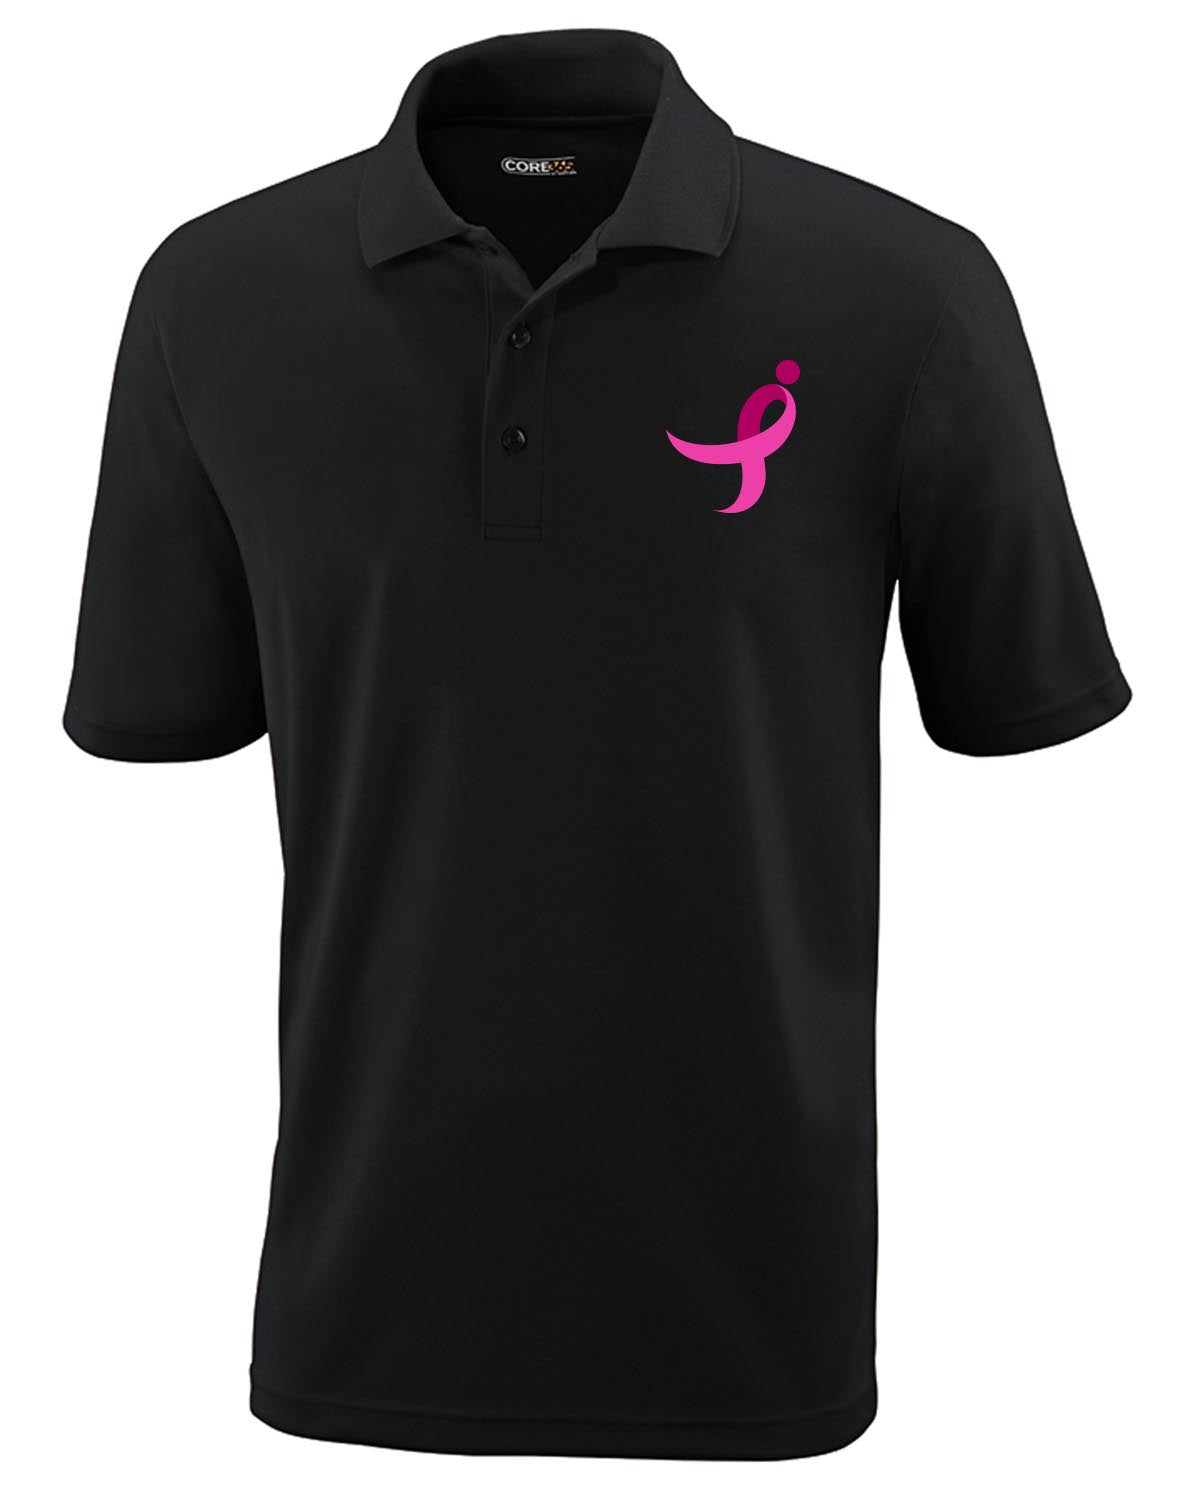 Men's Performance Polo, Pink Ribbon